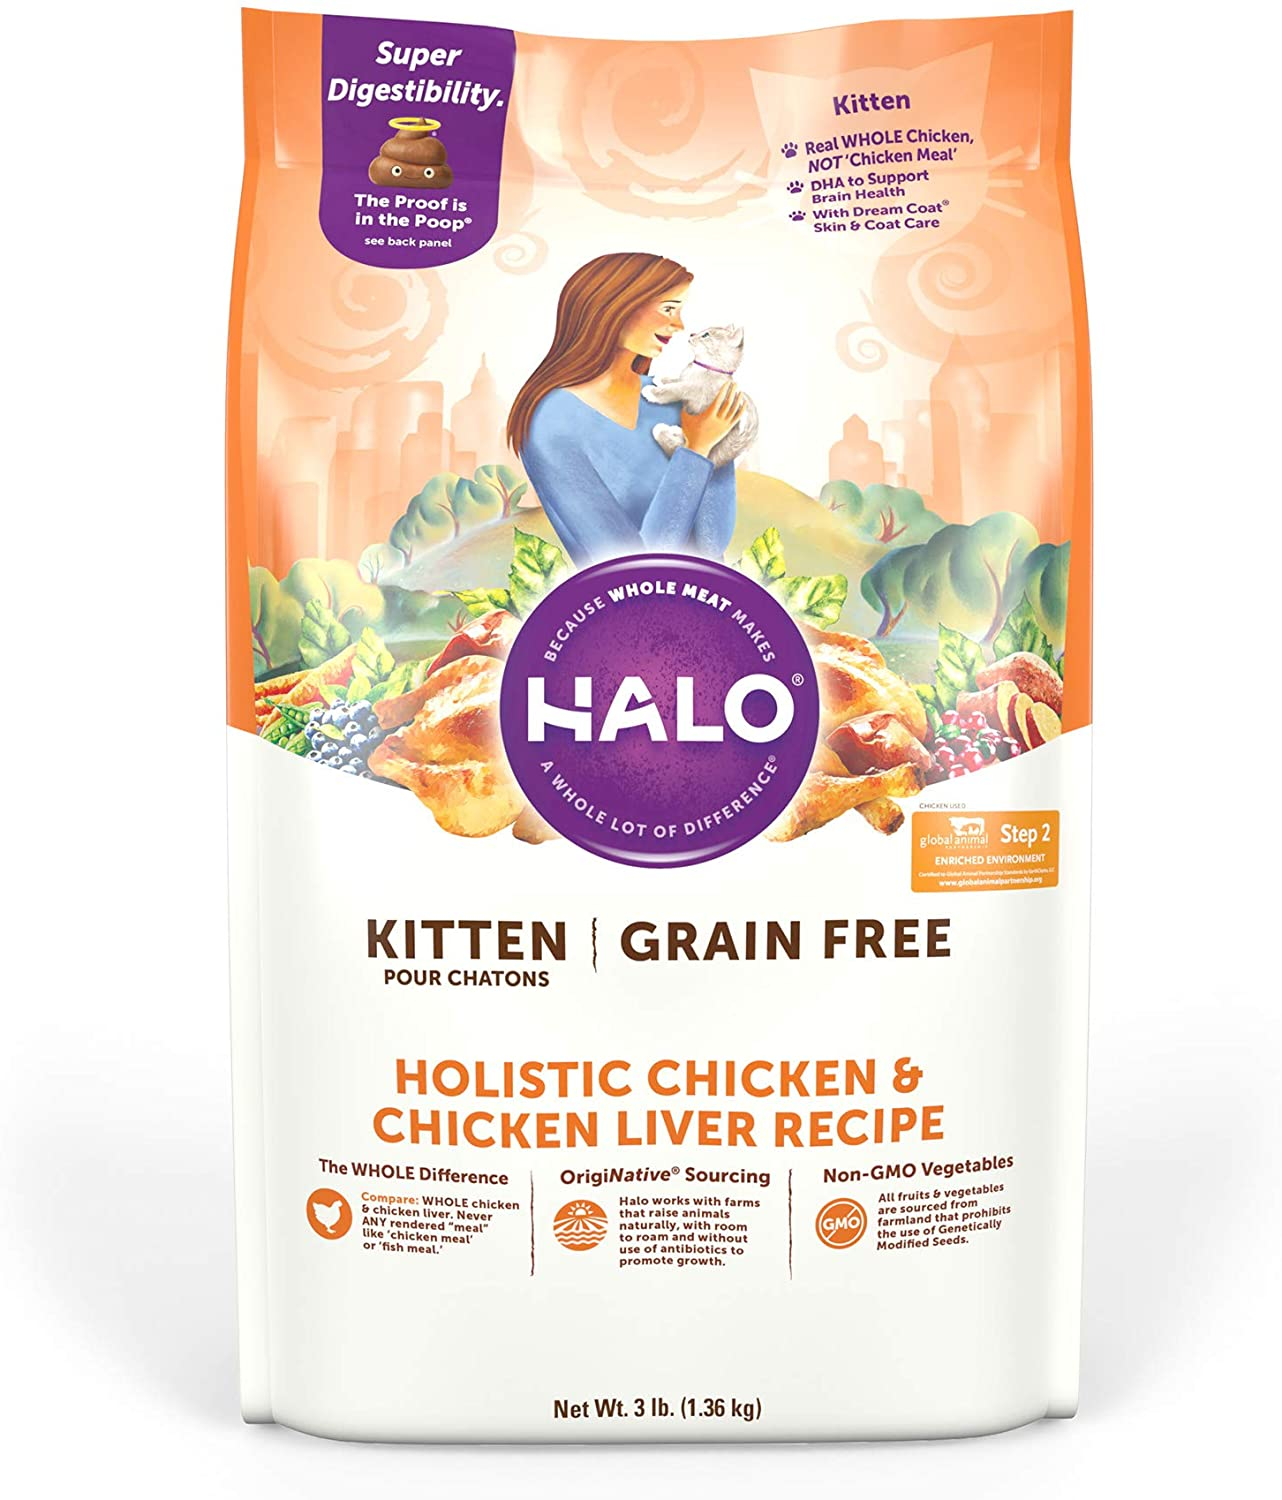 Halo Grain Free Natural Dry Cat Food - Kitten Recipe - Premium and Holistic Chicken & Chicken Liver - 3 Pound Bag - Sustainably Sourced Dry Cat Food - Whole Meat, Highly Digestible, Non-GMO